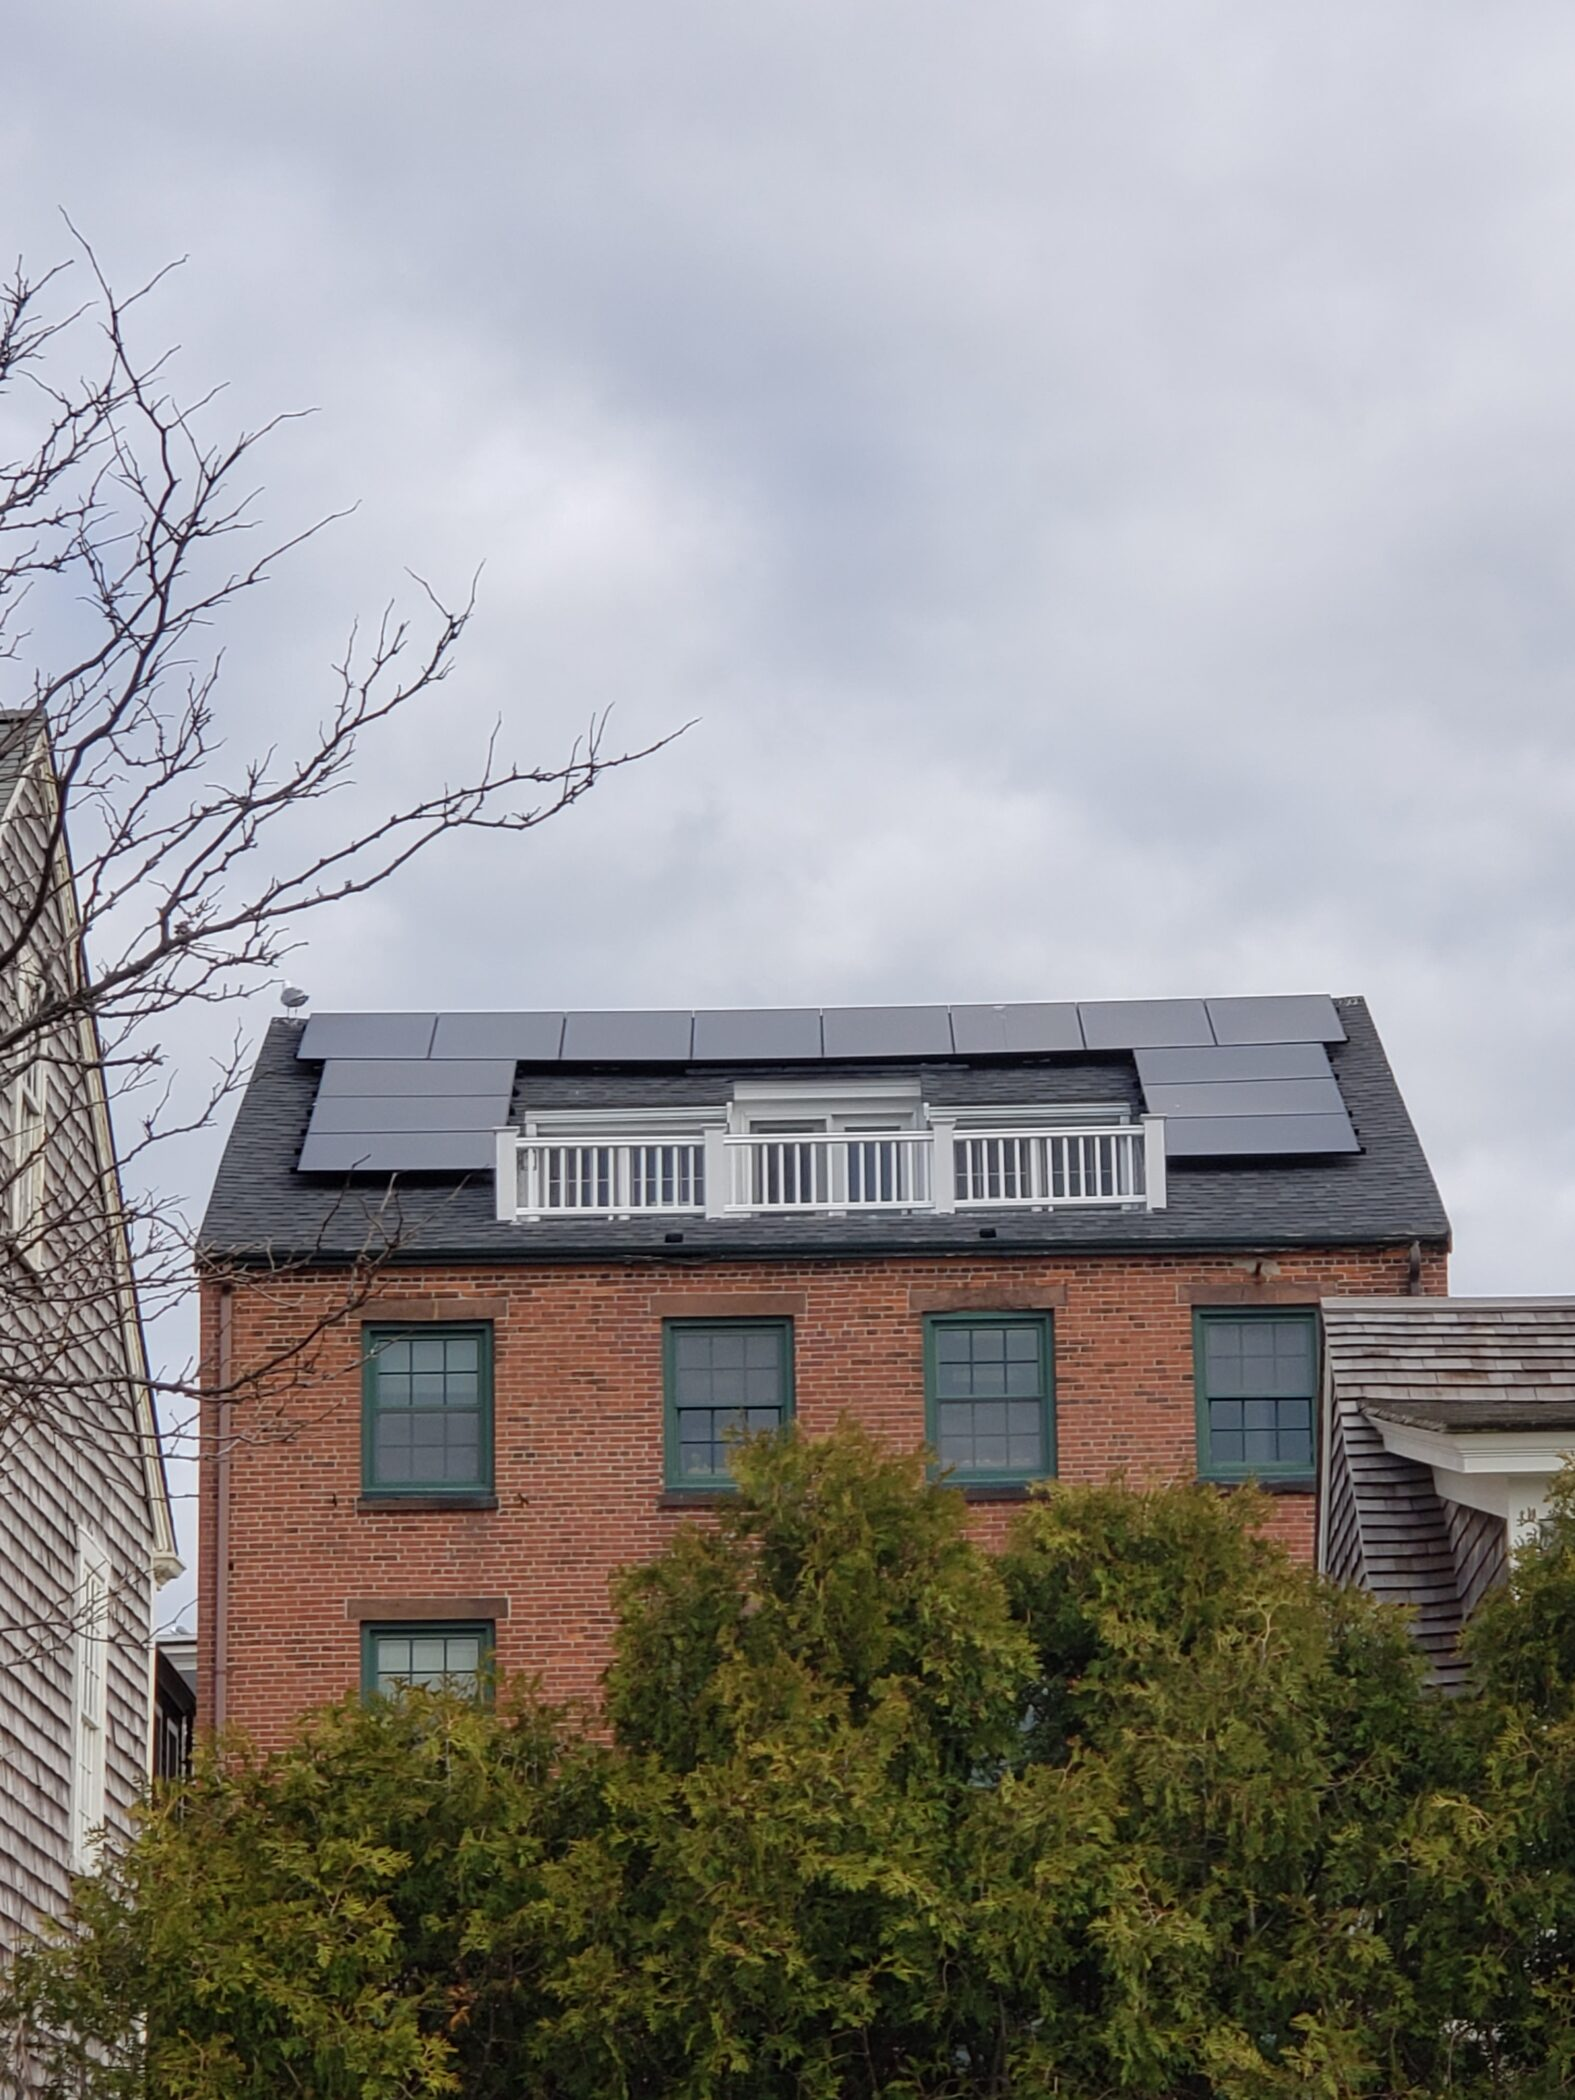 solar panel installation and steps towards a greener community